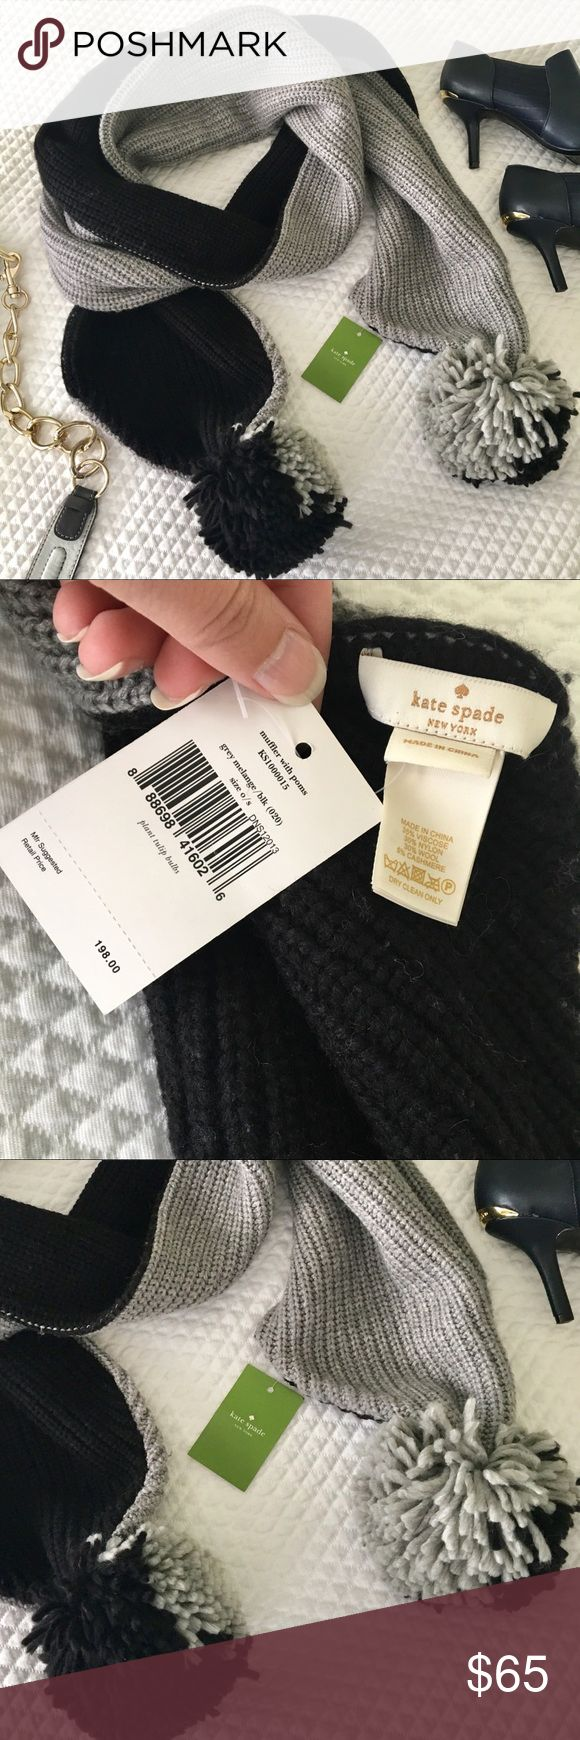 NWT Kate Spade Scarf with Poms Gorgeous, warm (contains wool and cashmere) grey and black scarf with pond. Brand new!  Full price is $198.  [Purse and booties also for sale] kate spade Accessories Scarves & Wraps